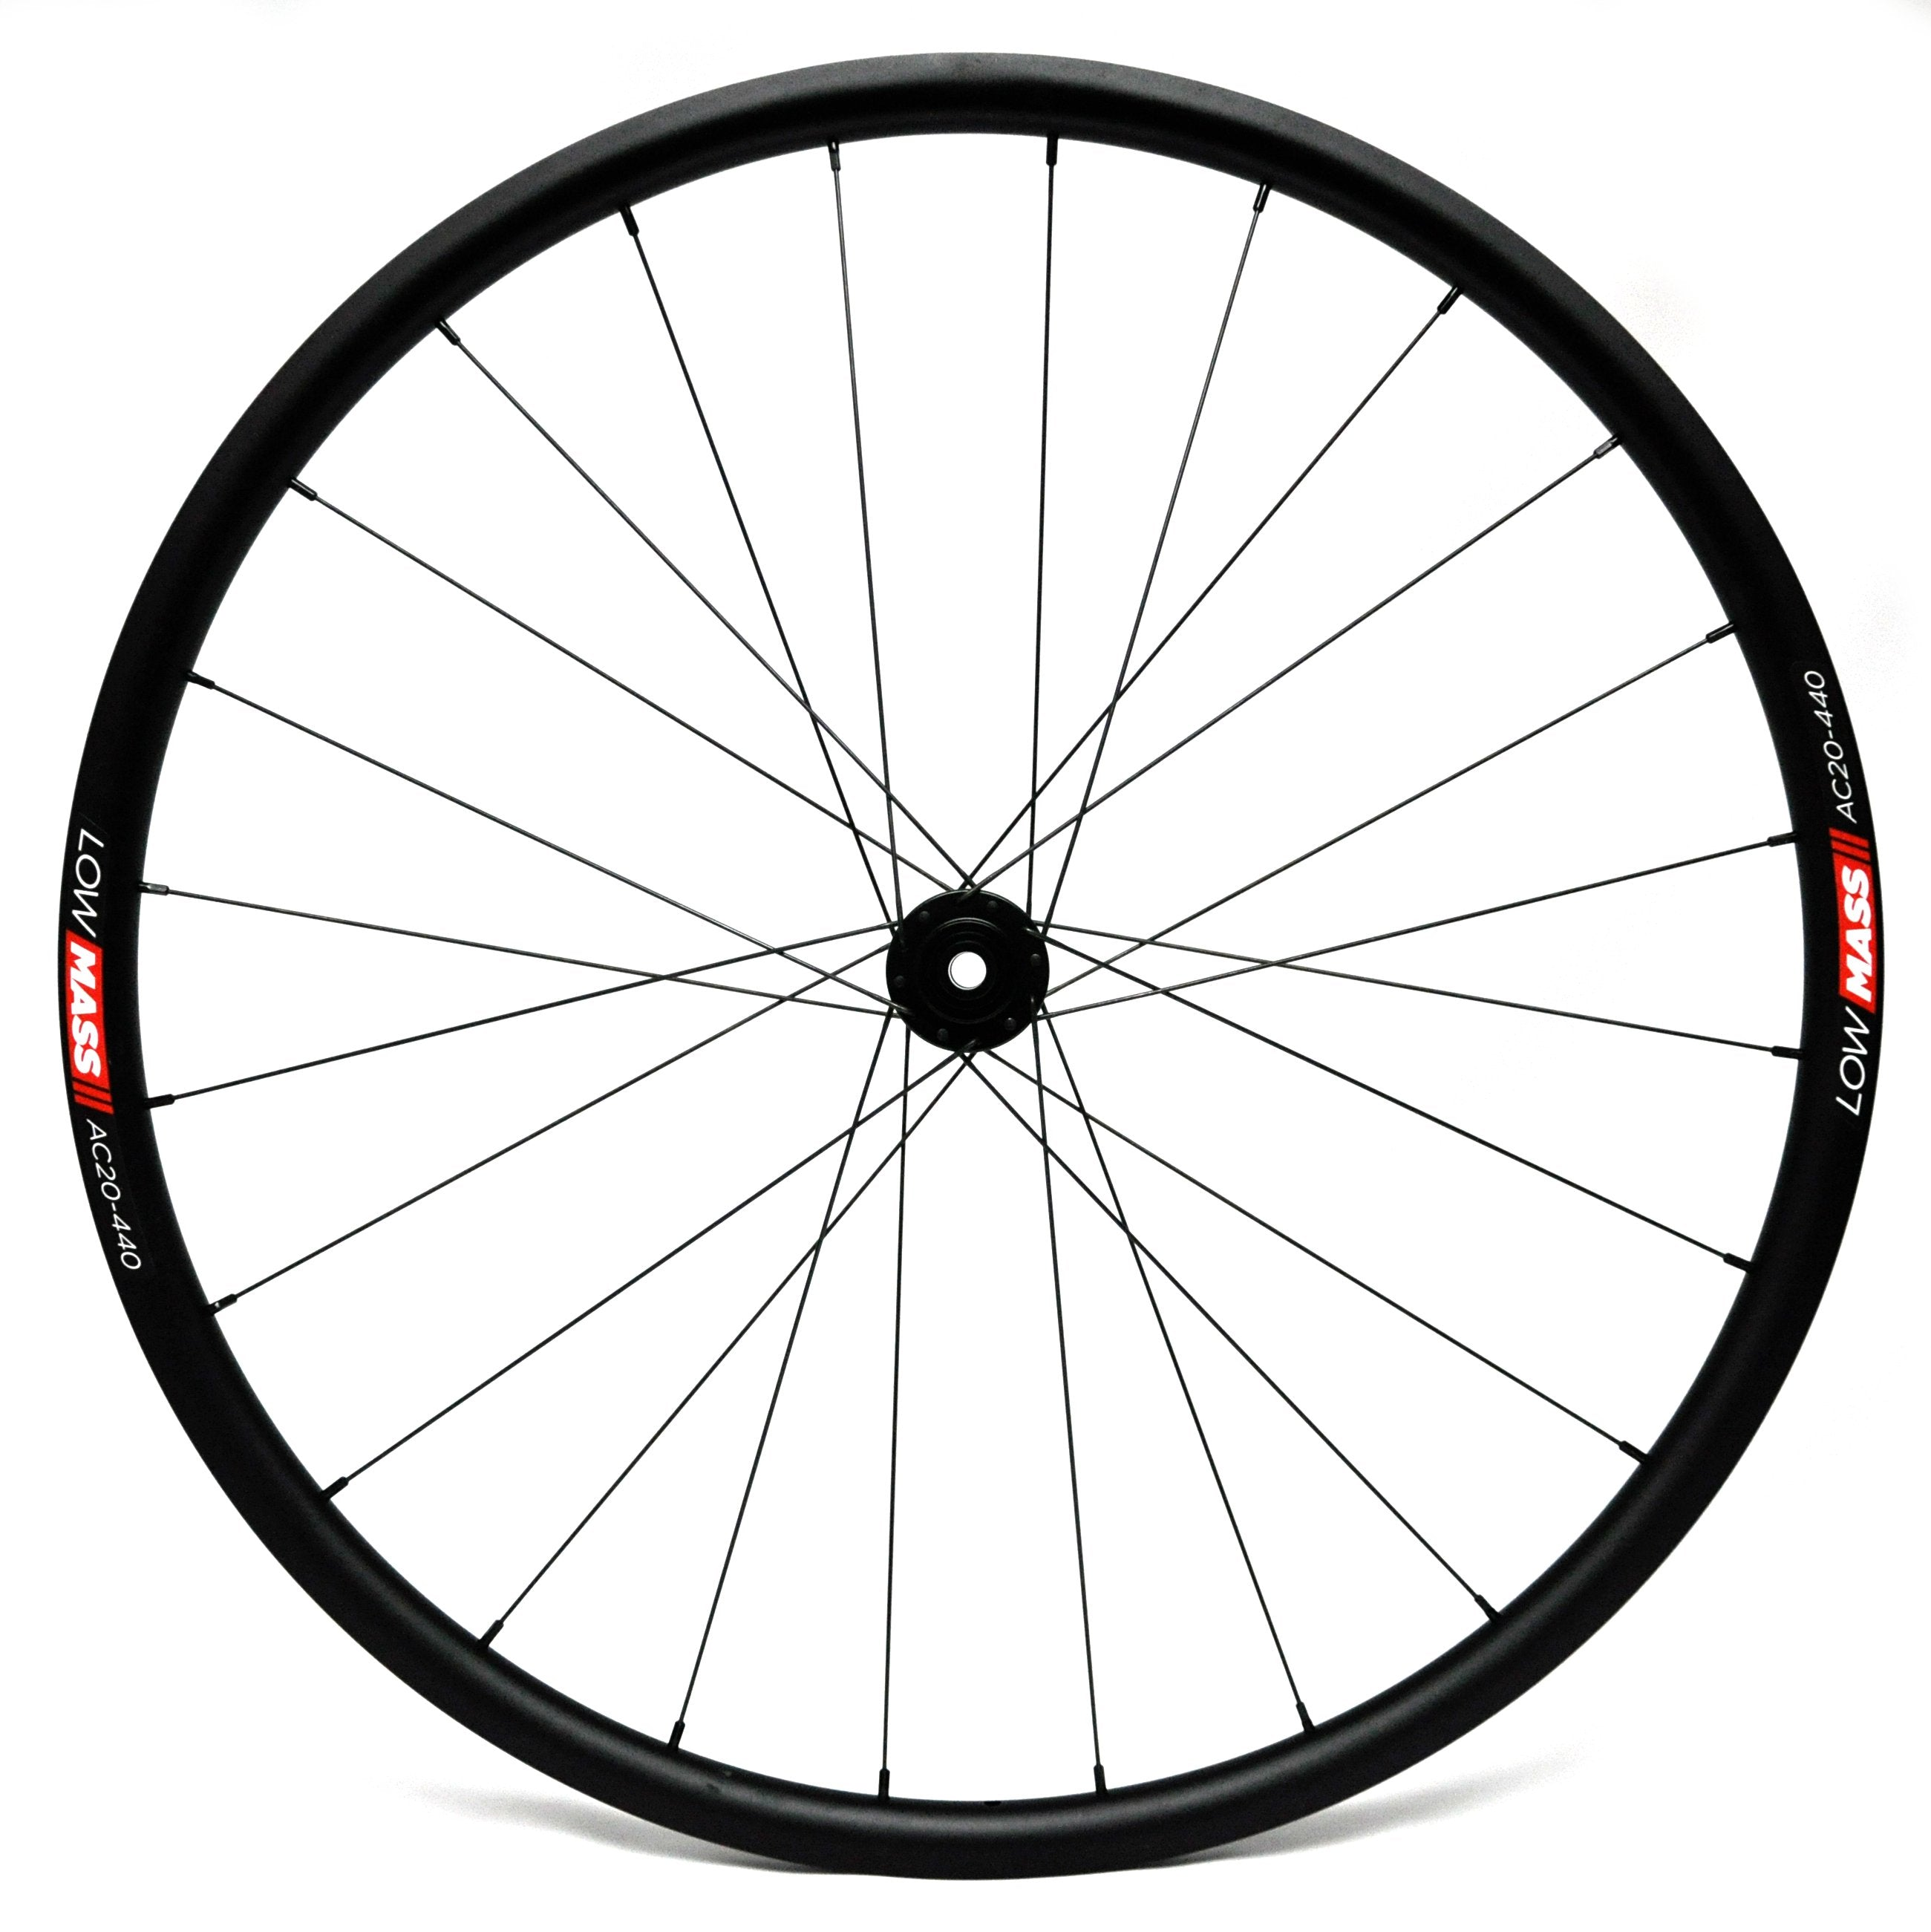 700C LOWMASS Multi-Purpose Aluminium Tubeless Disc Wheelset